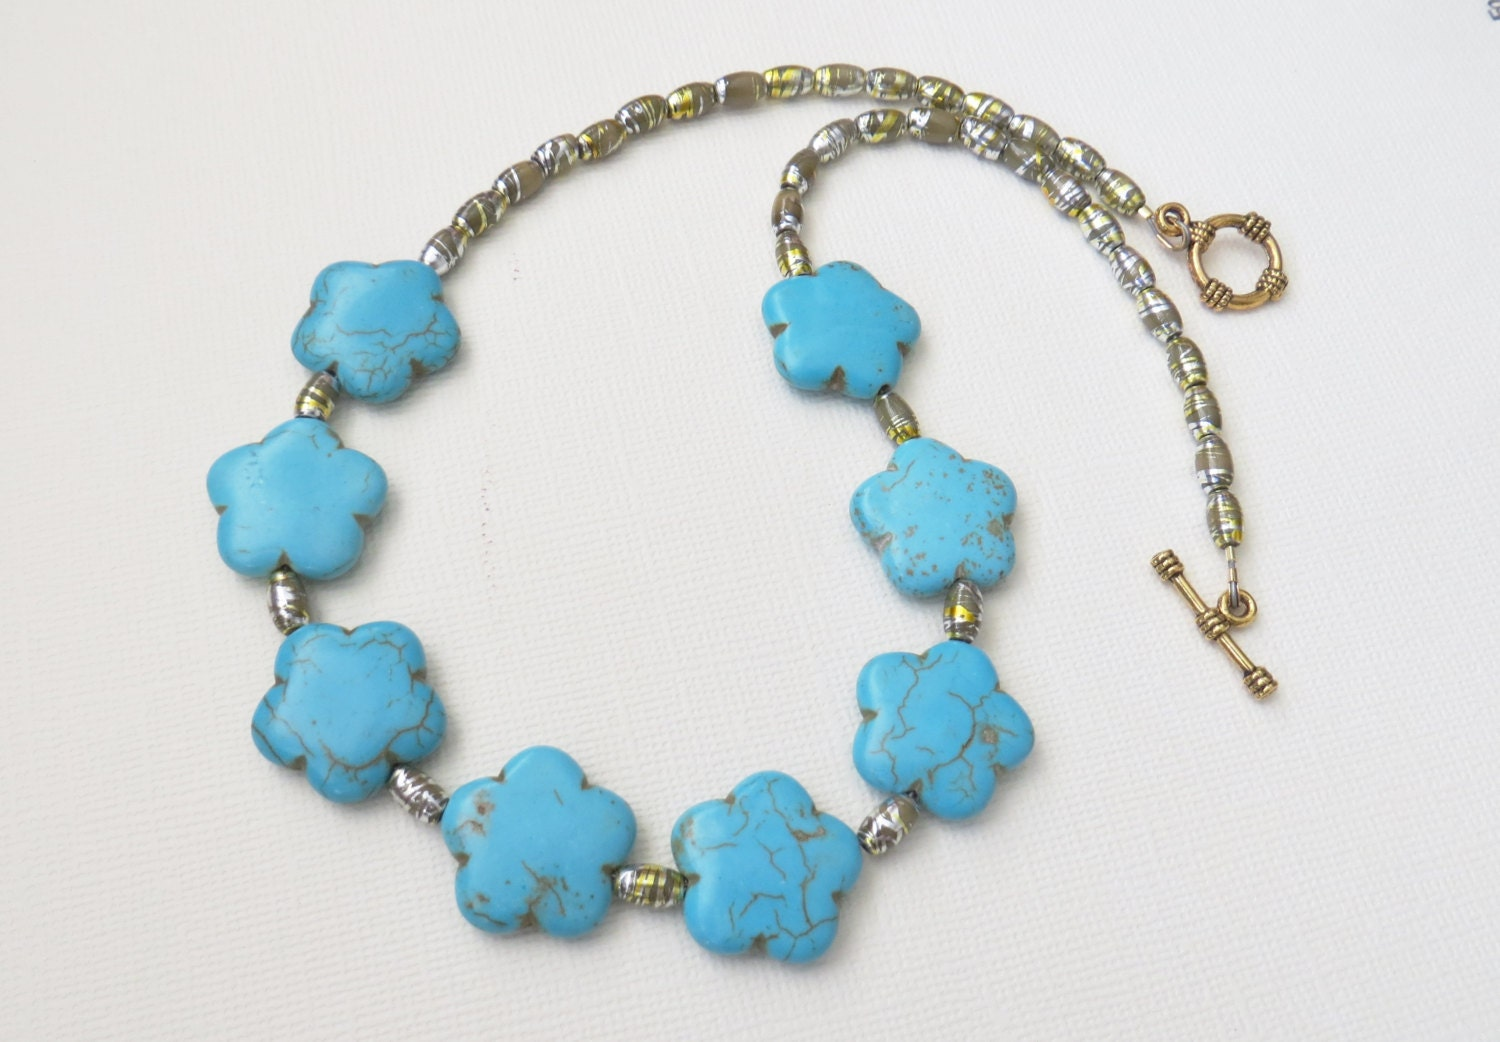 chunky turquoise necklaceturquoise magnasite necklace aqua